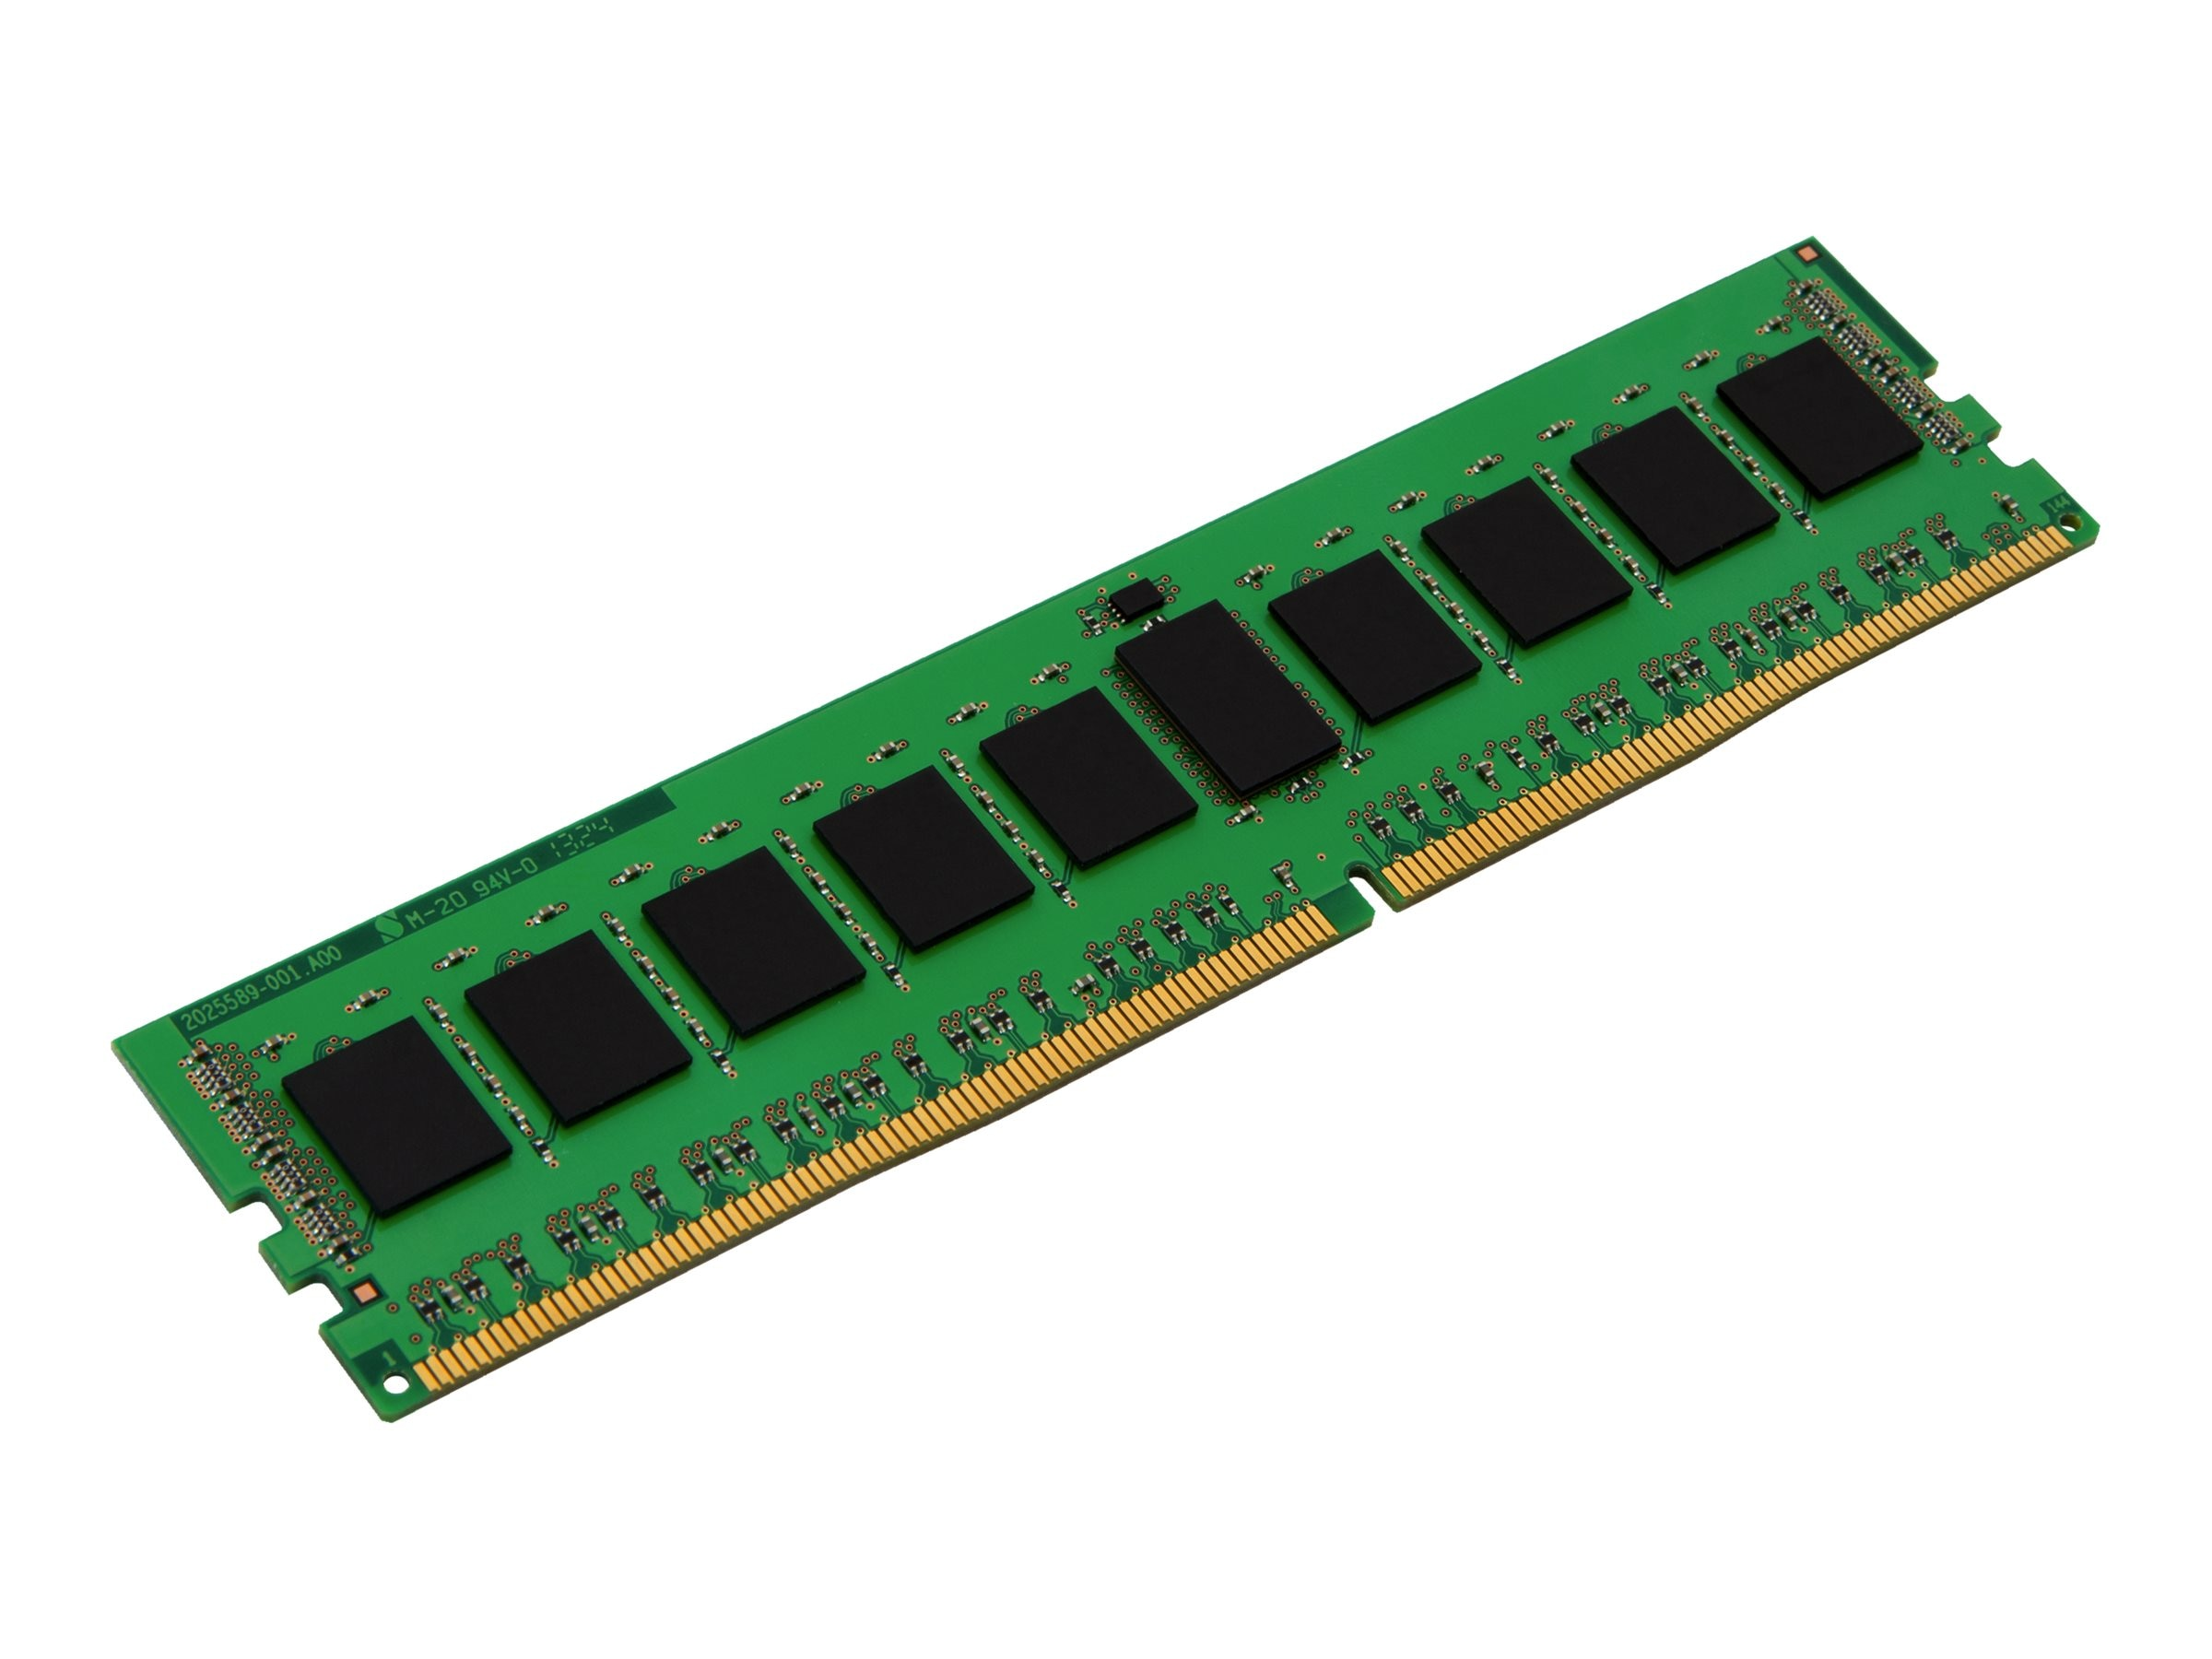 Kingston 8GB PC4-17000 288-pin DDR4 SDRAM RDIMM for Select Models, KVR21R15D8/8